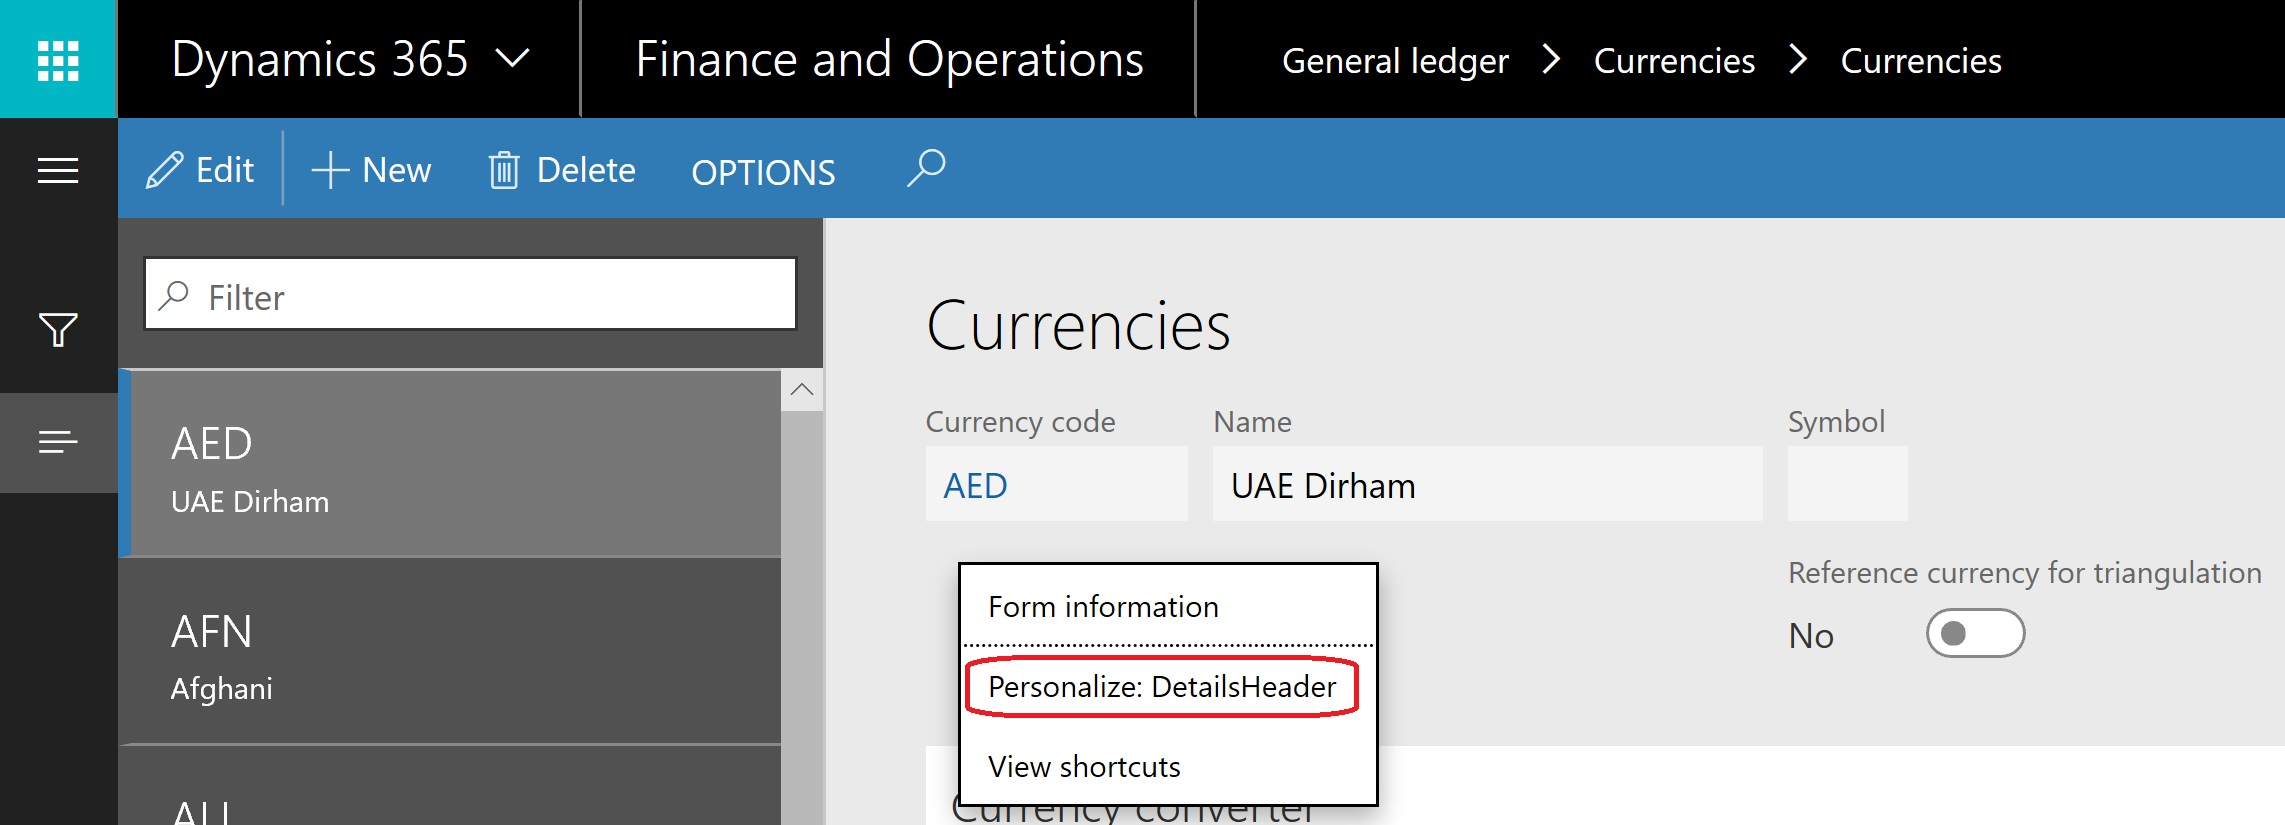 How to add new currency to Microsoft Dynamics365 for Finance